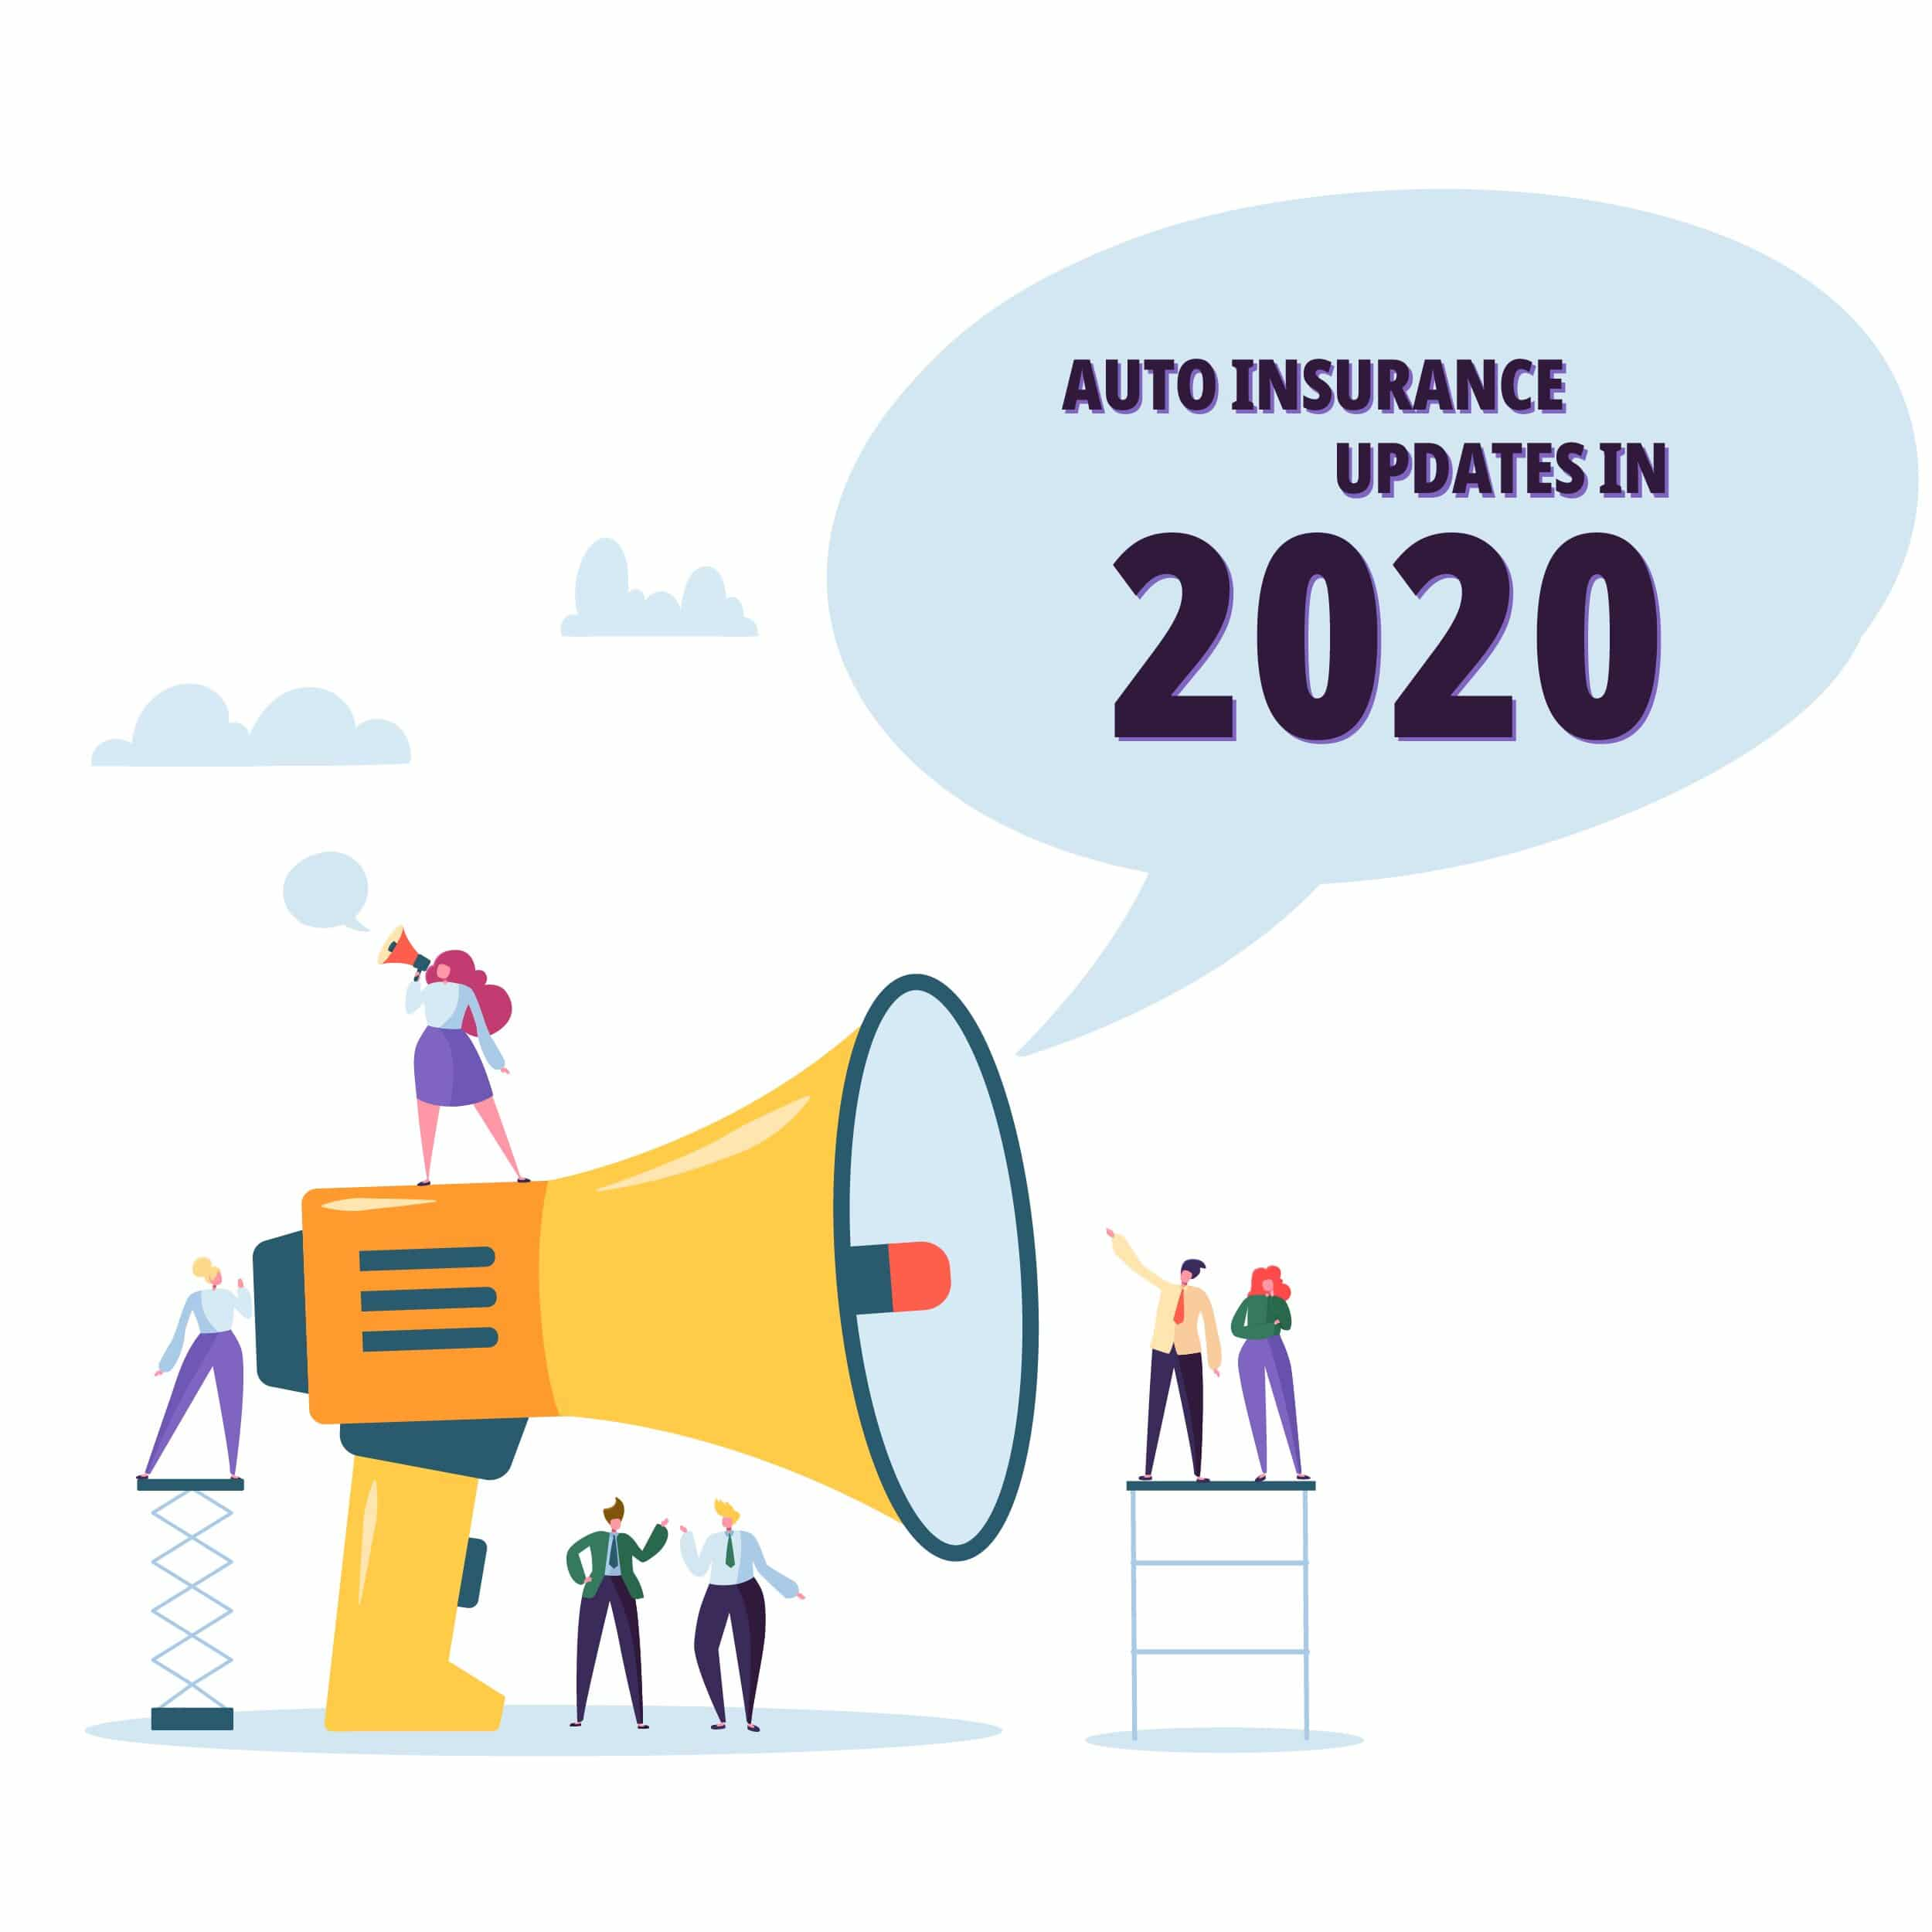 auto insurance news and changes in 2020 texas alisnco